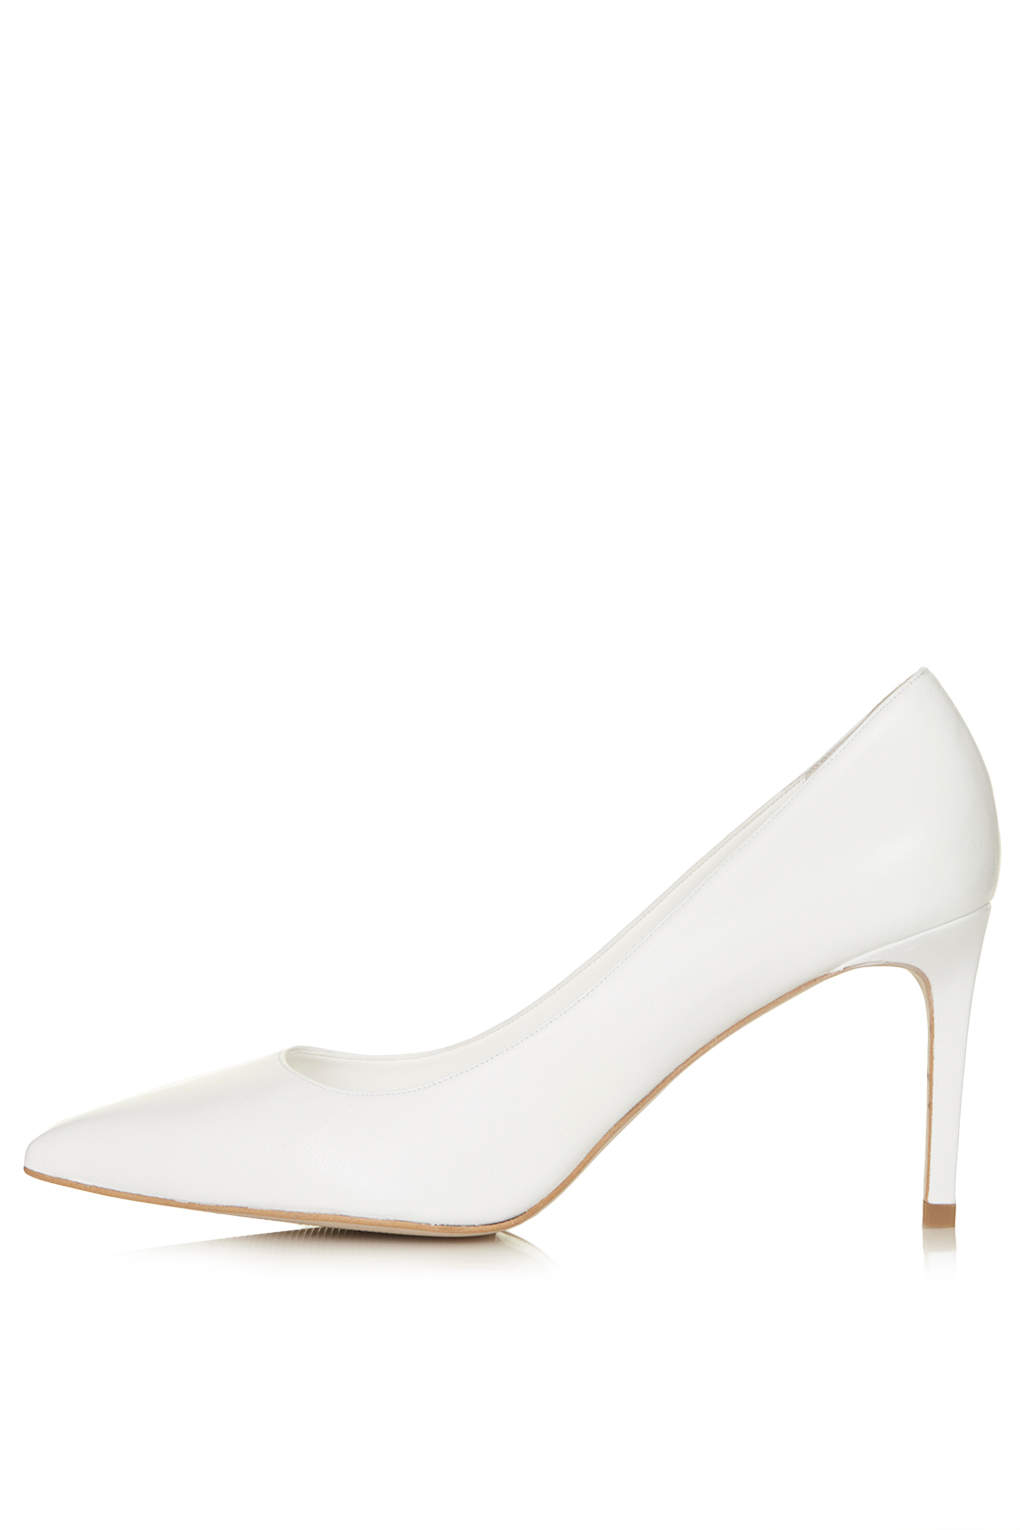 Topshop Golden Mid Heel Court Shoes in White | Lyst